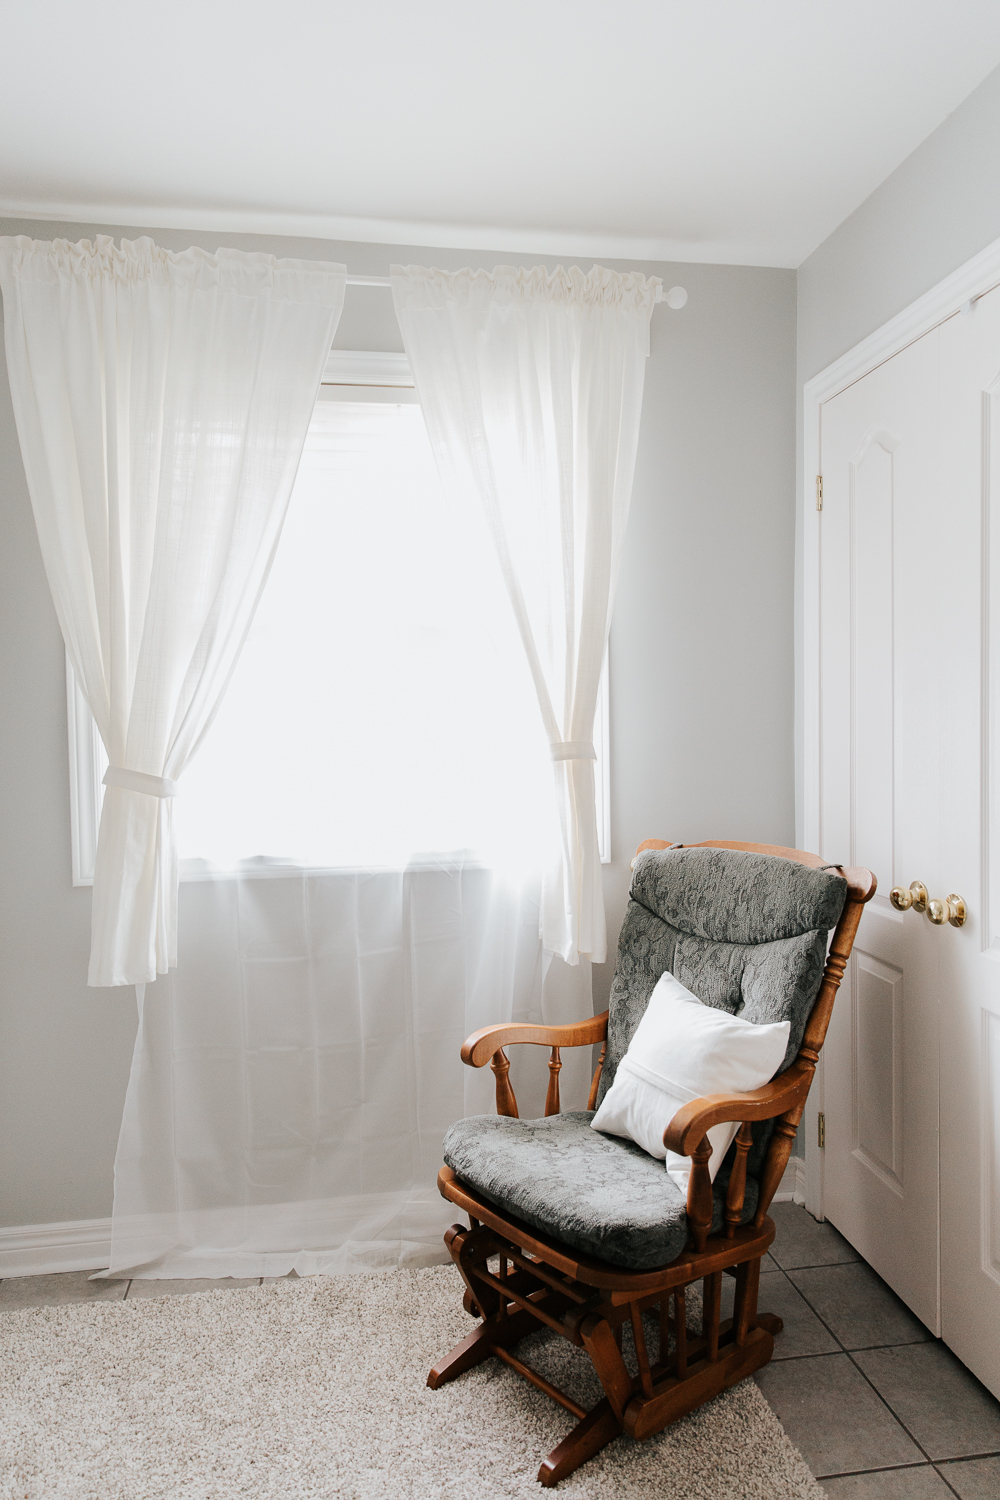 wood glider in nursery corner, grey walls - GTA Lifestyle Photography